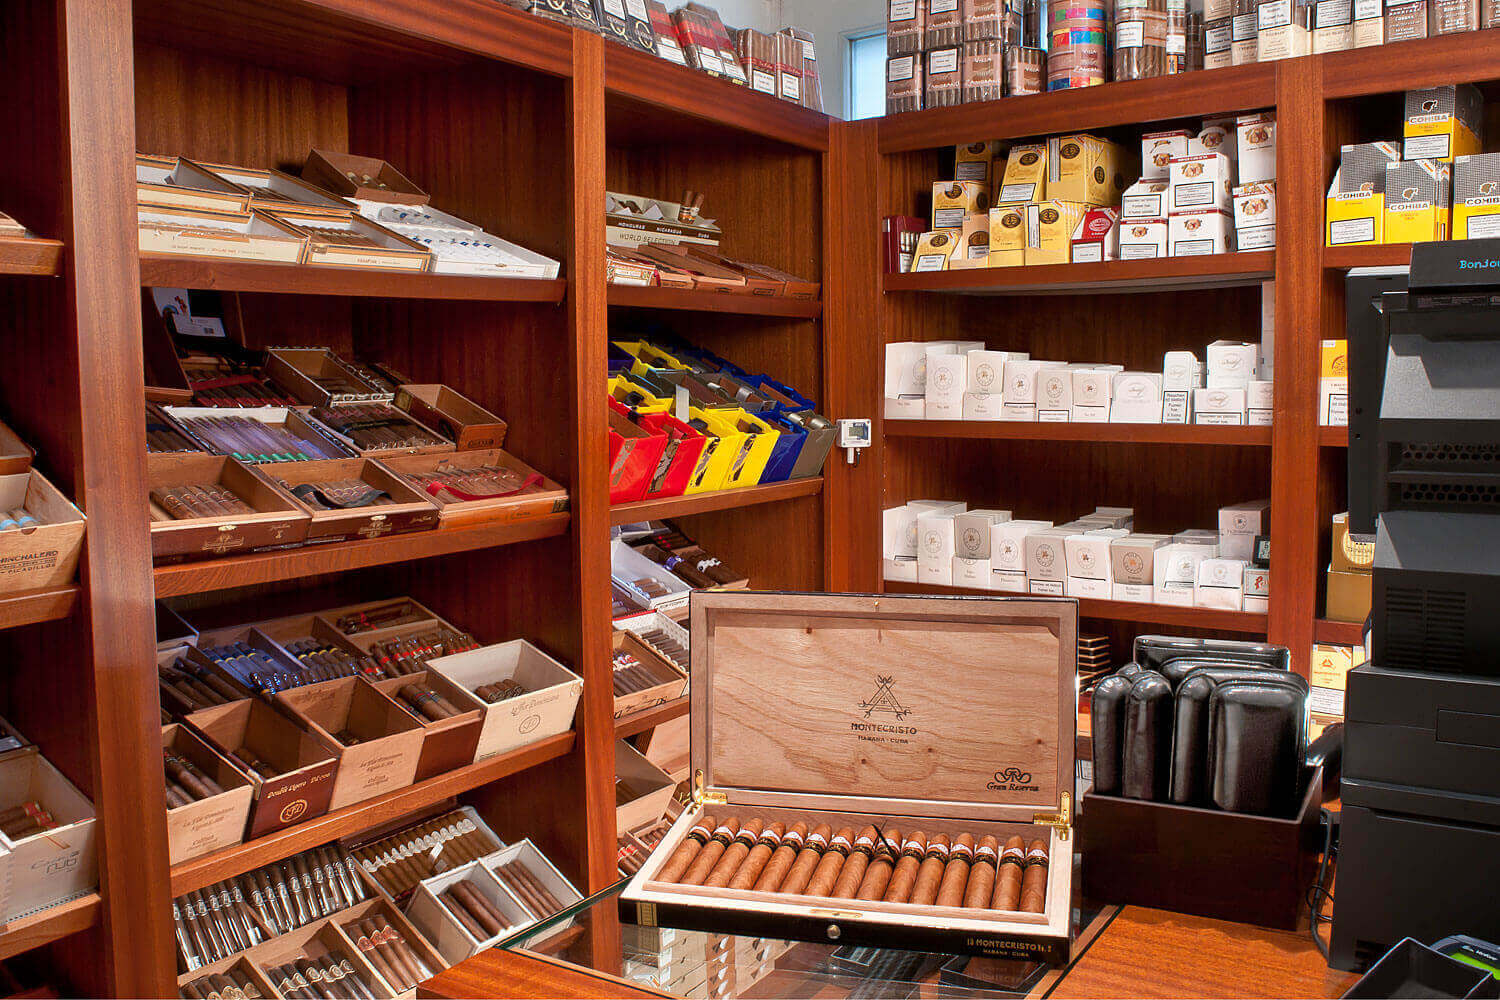 Salesroom of Gestocigars.